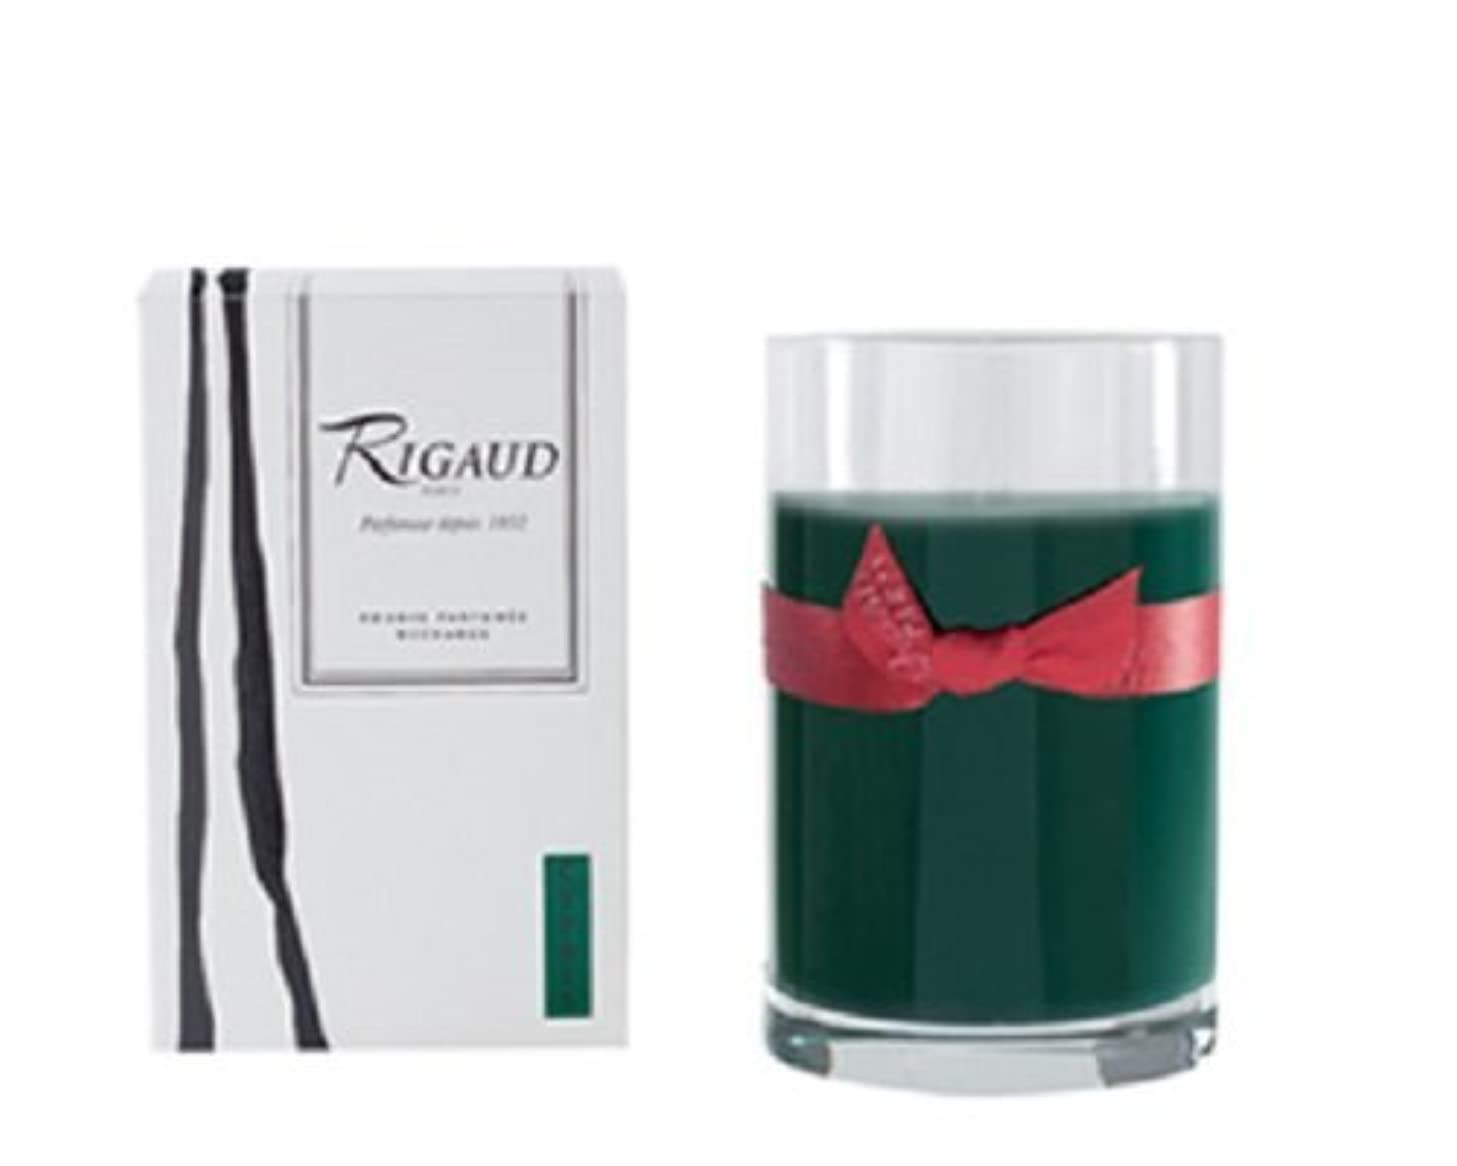 Rigaud Paris, Cypres Large Candle Recharge (Refill) Bougie D'ambiance Parfumee,